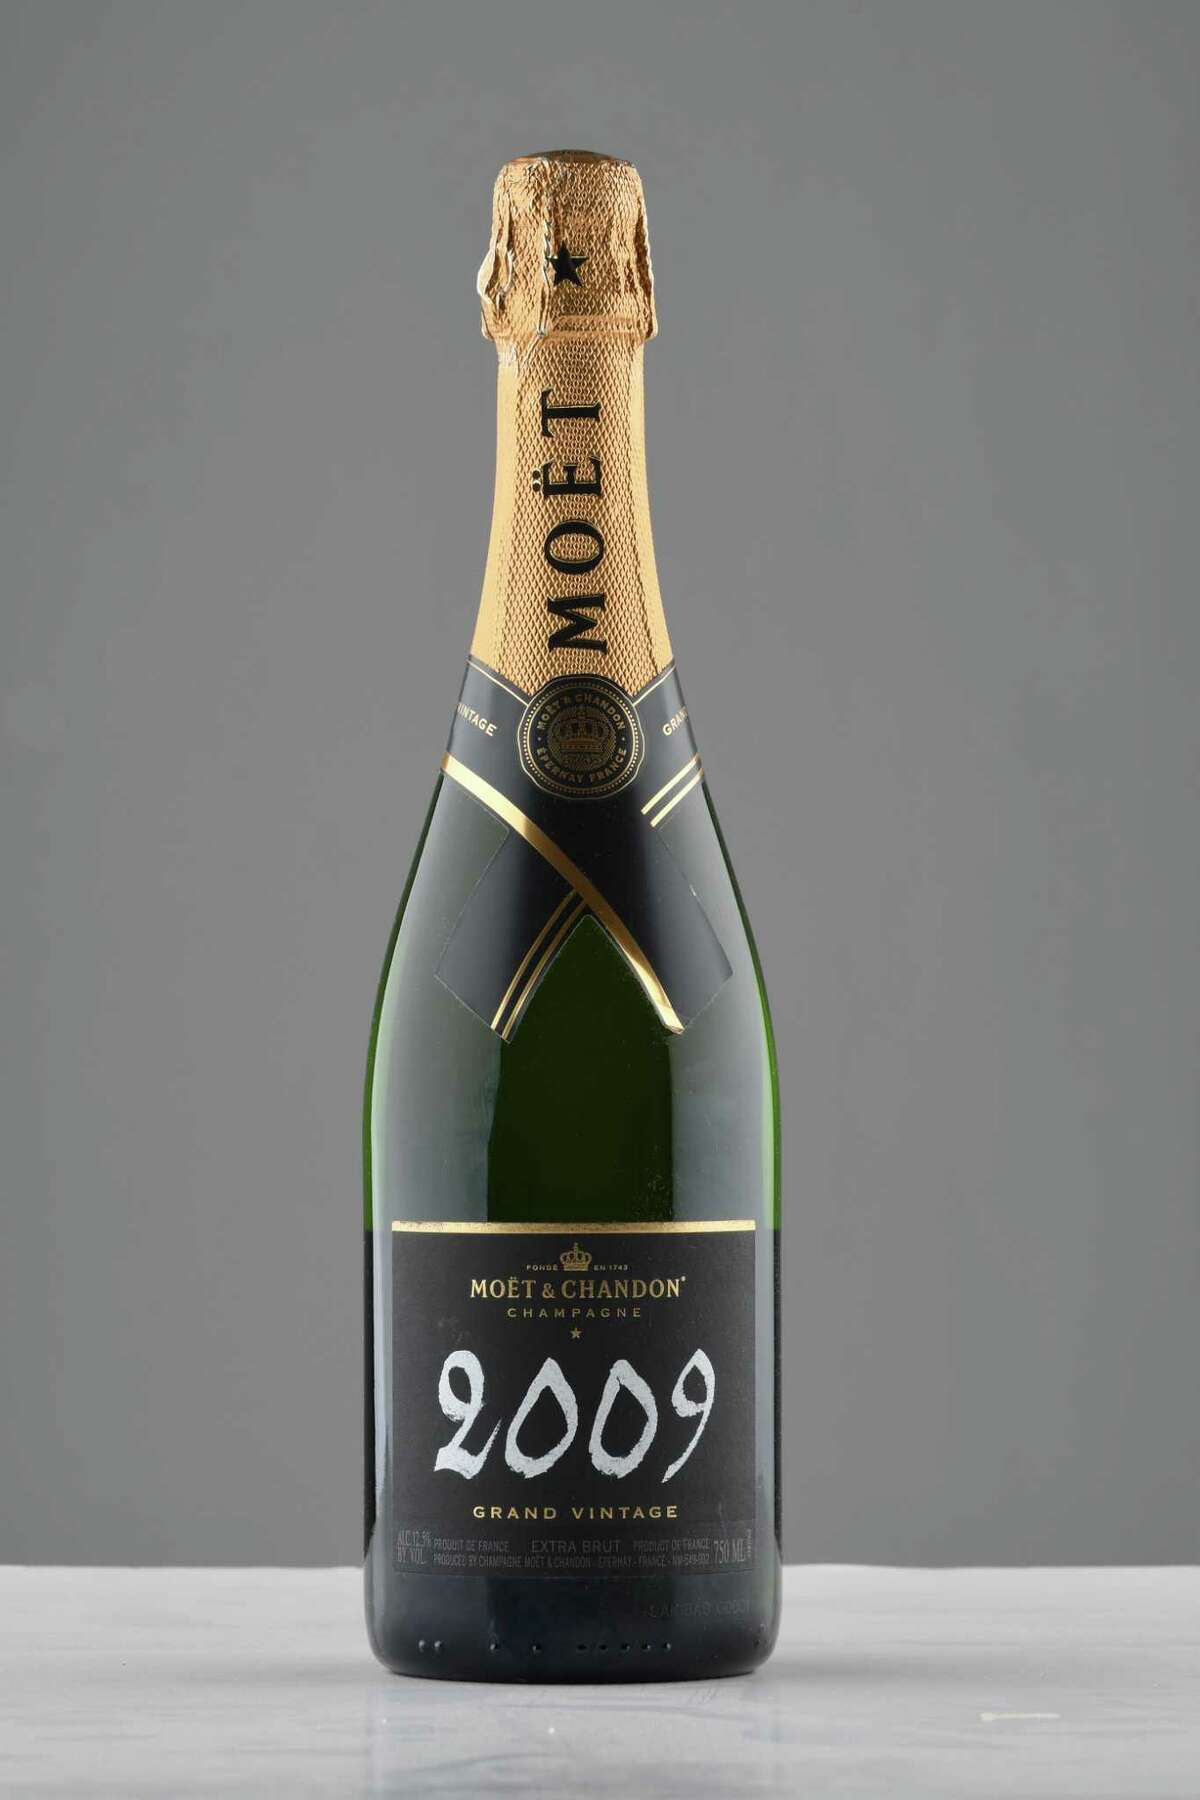 Moet Chandon grand vintage 2009 on Tuesday, Dec. 4, 2018, at the Times Union in Colonie, N.Y. (Will Waldron/Times Union)